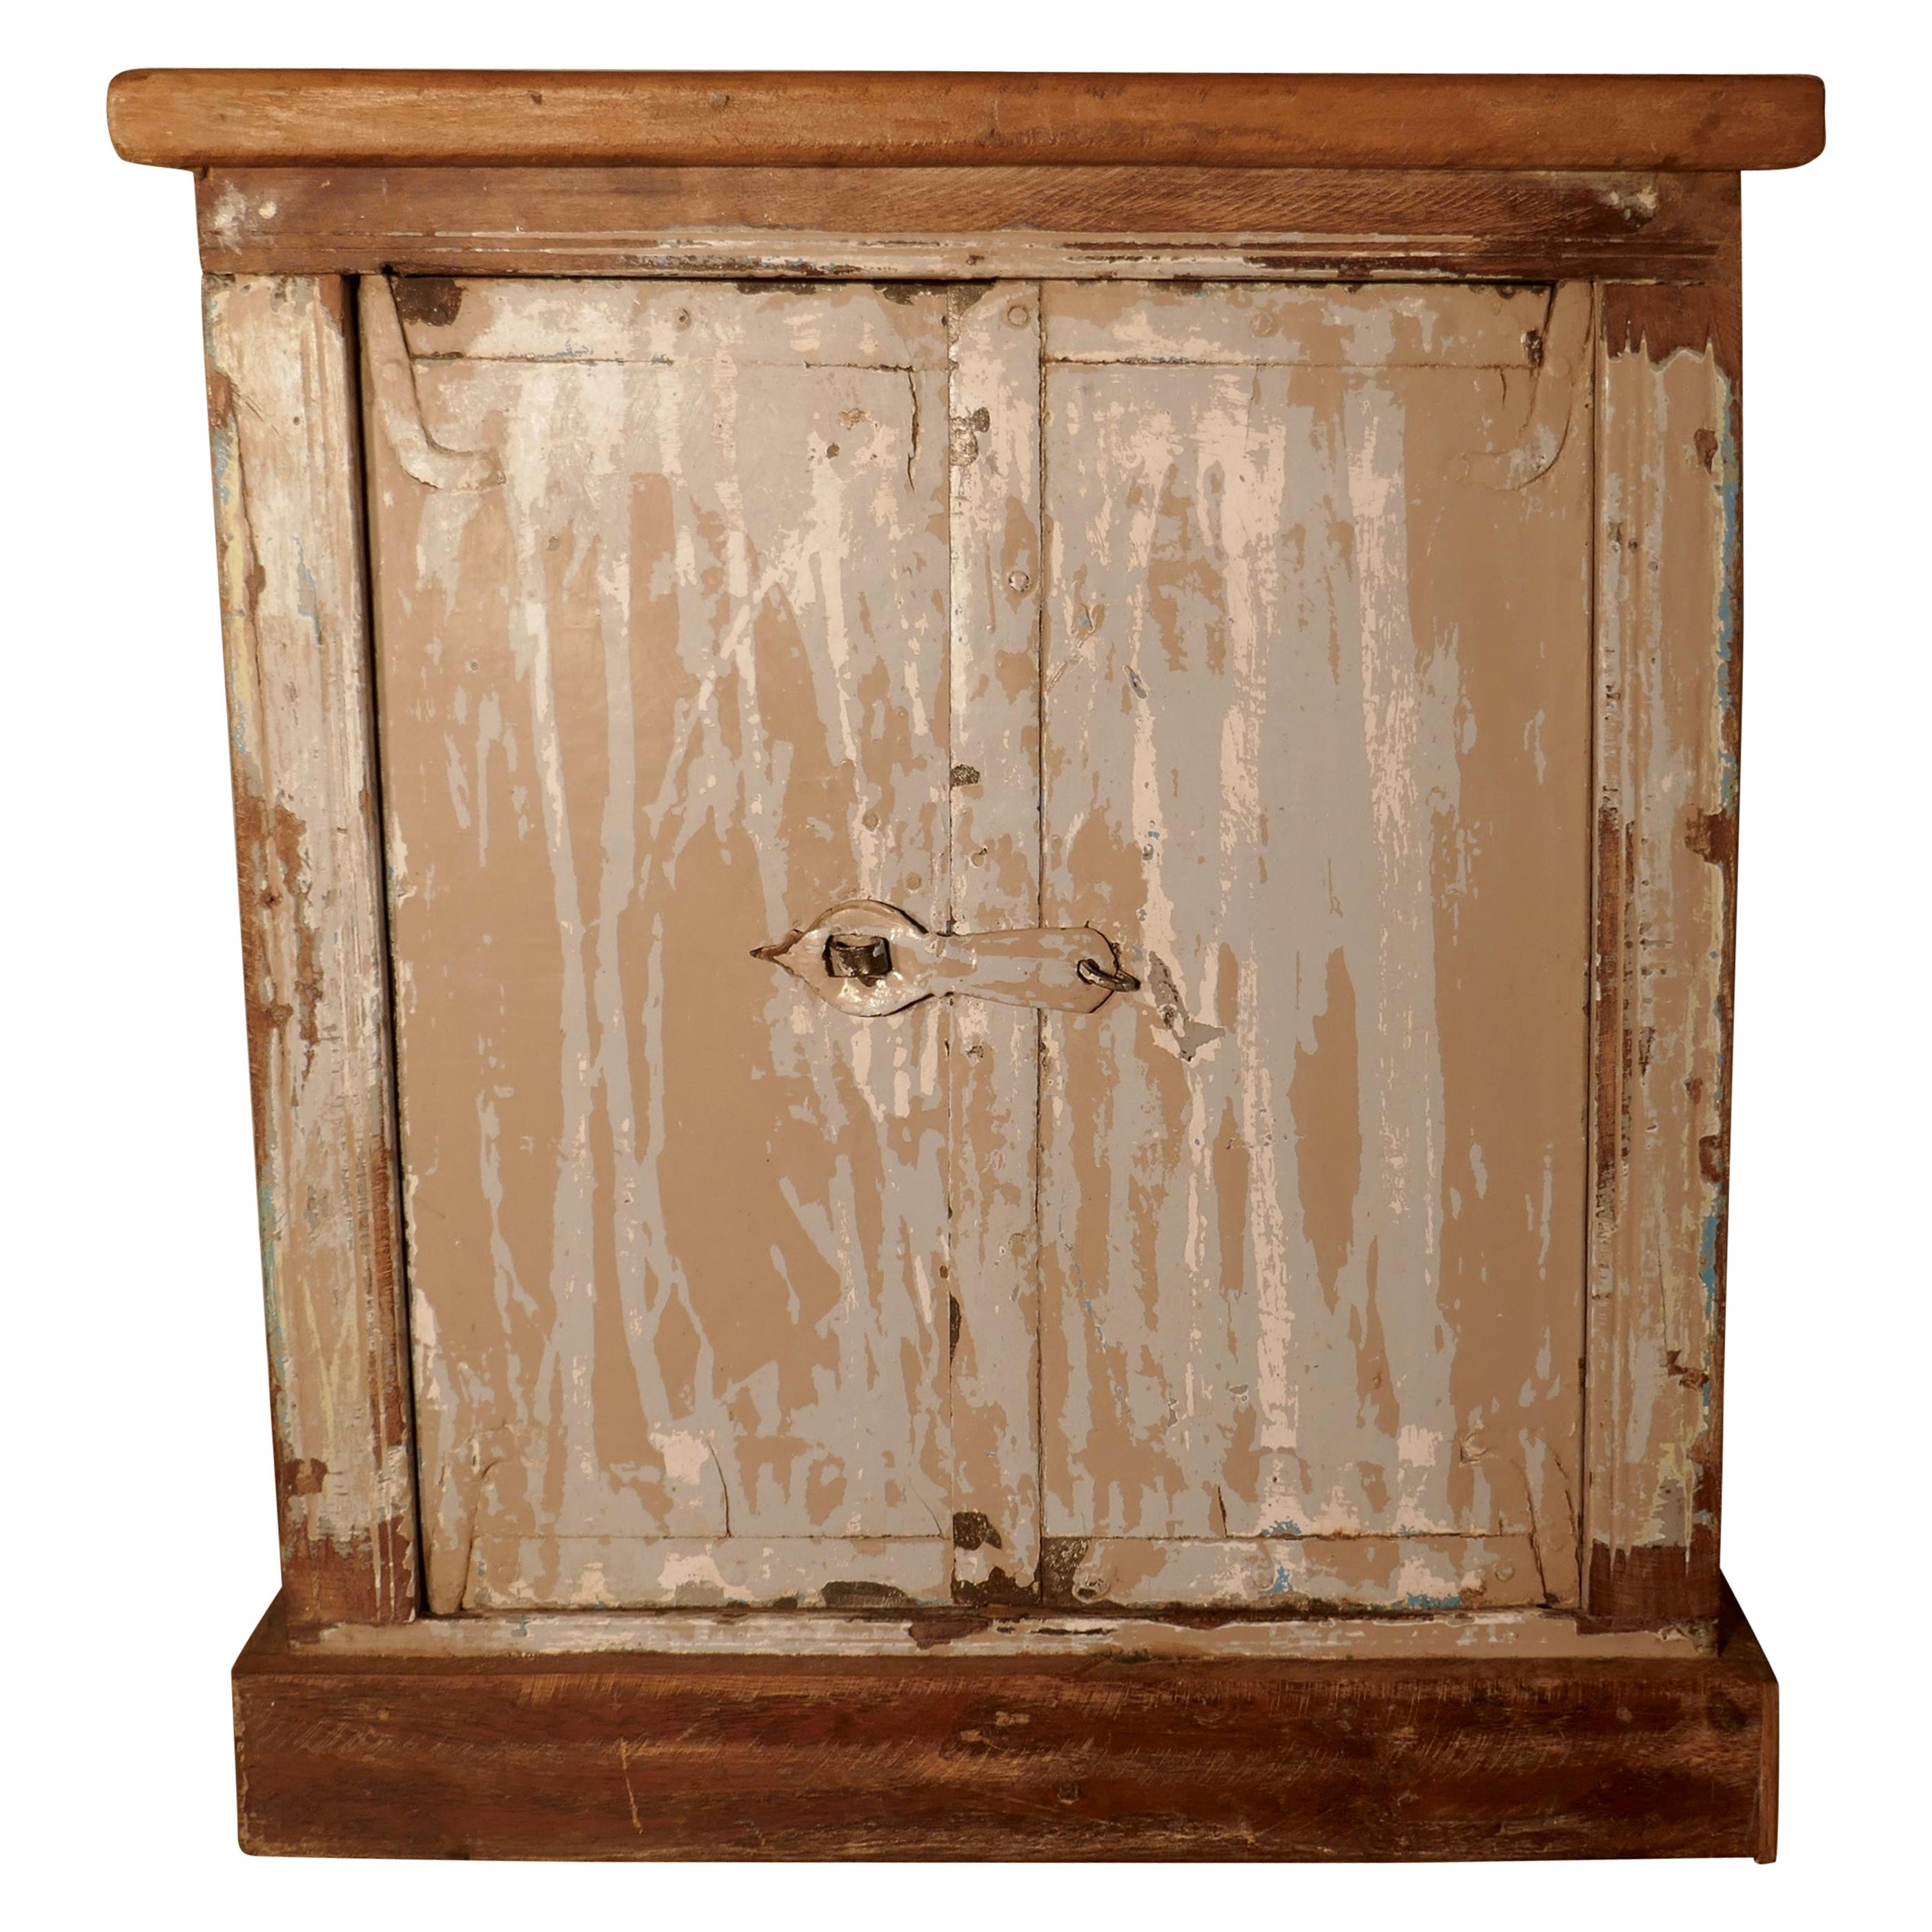 Primitive French Rustic 2-Door Cupboard with Distressed Worn Paint